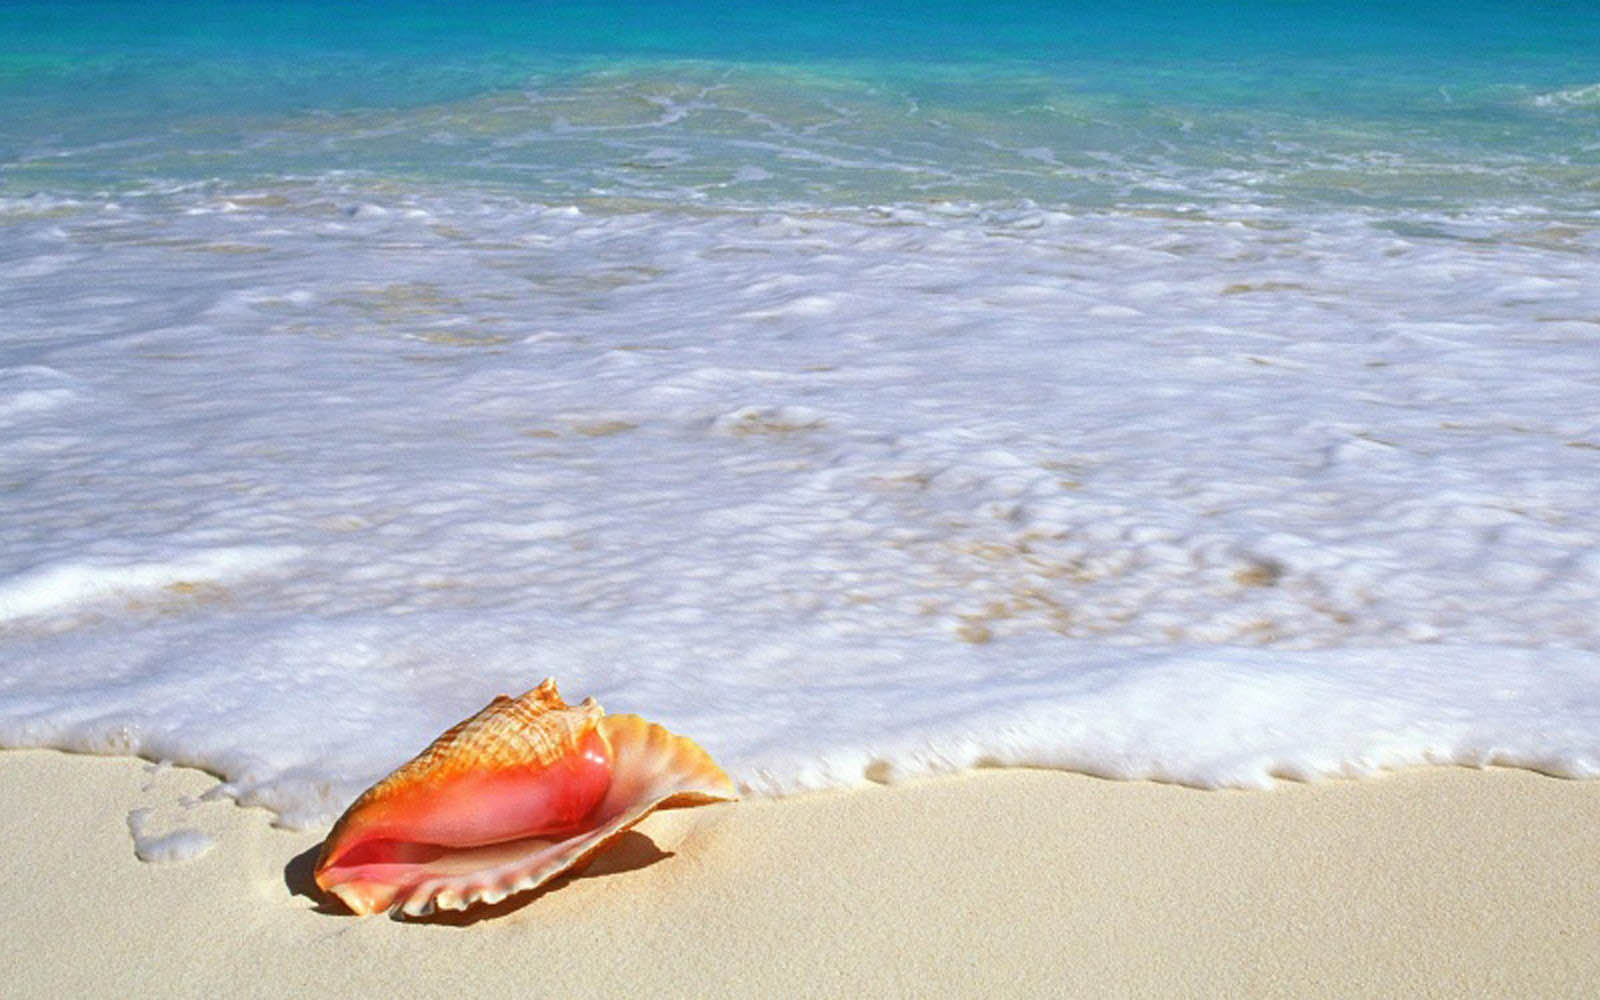 Hd wallpapers pictures of shells on the beach - Playa wallpaper ...